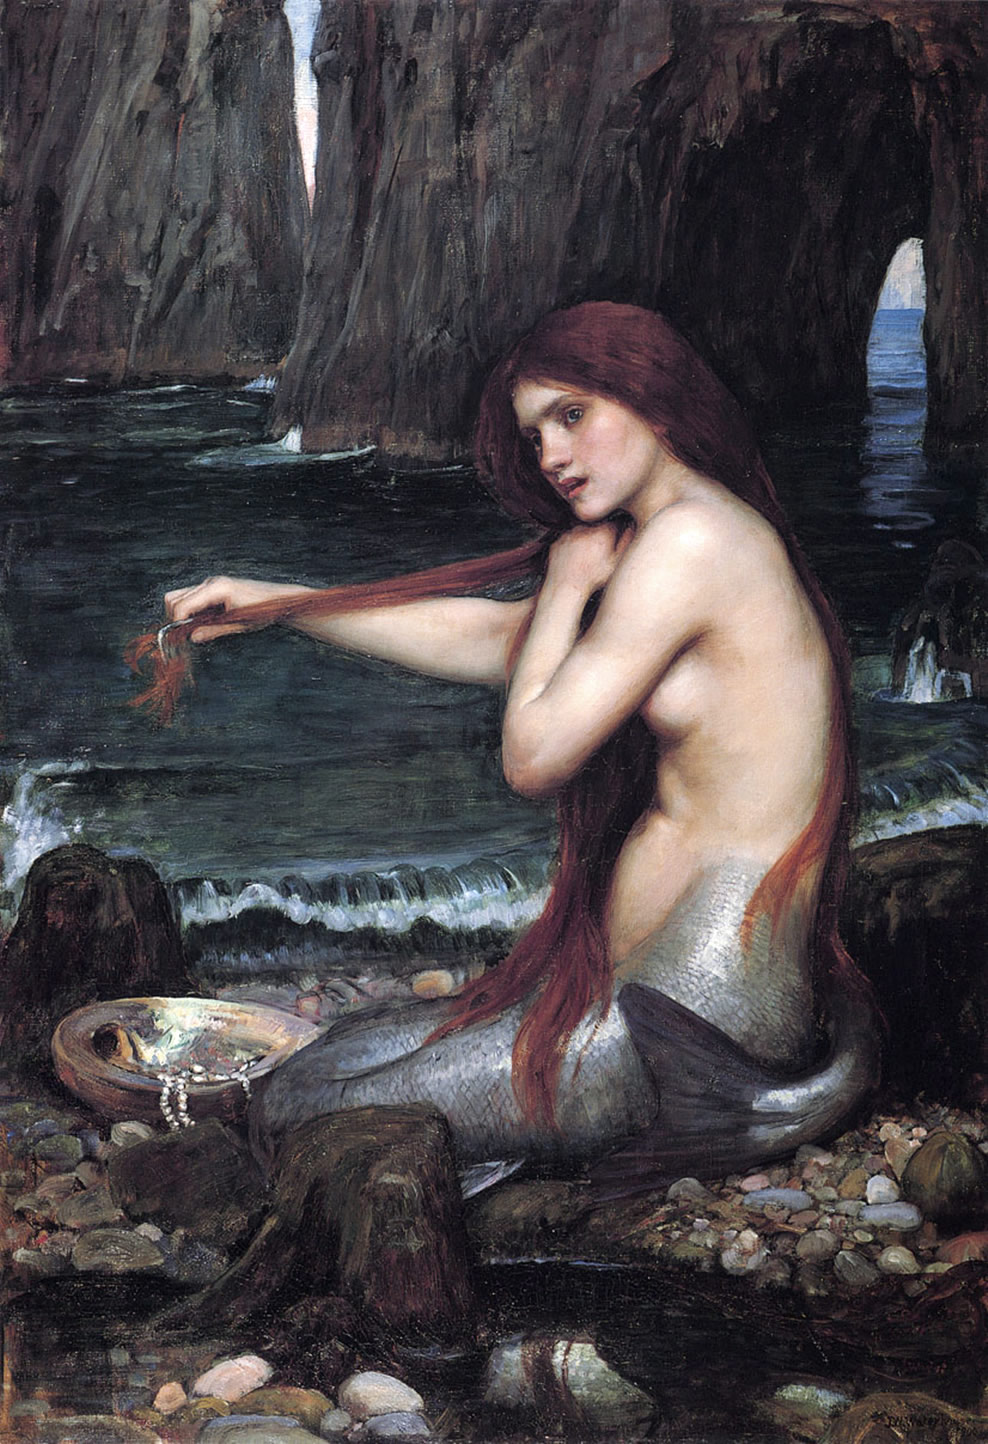 Archivo:Waterhouse a mermaid.jpg